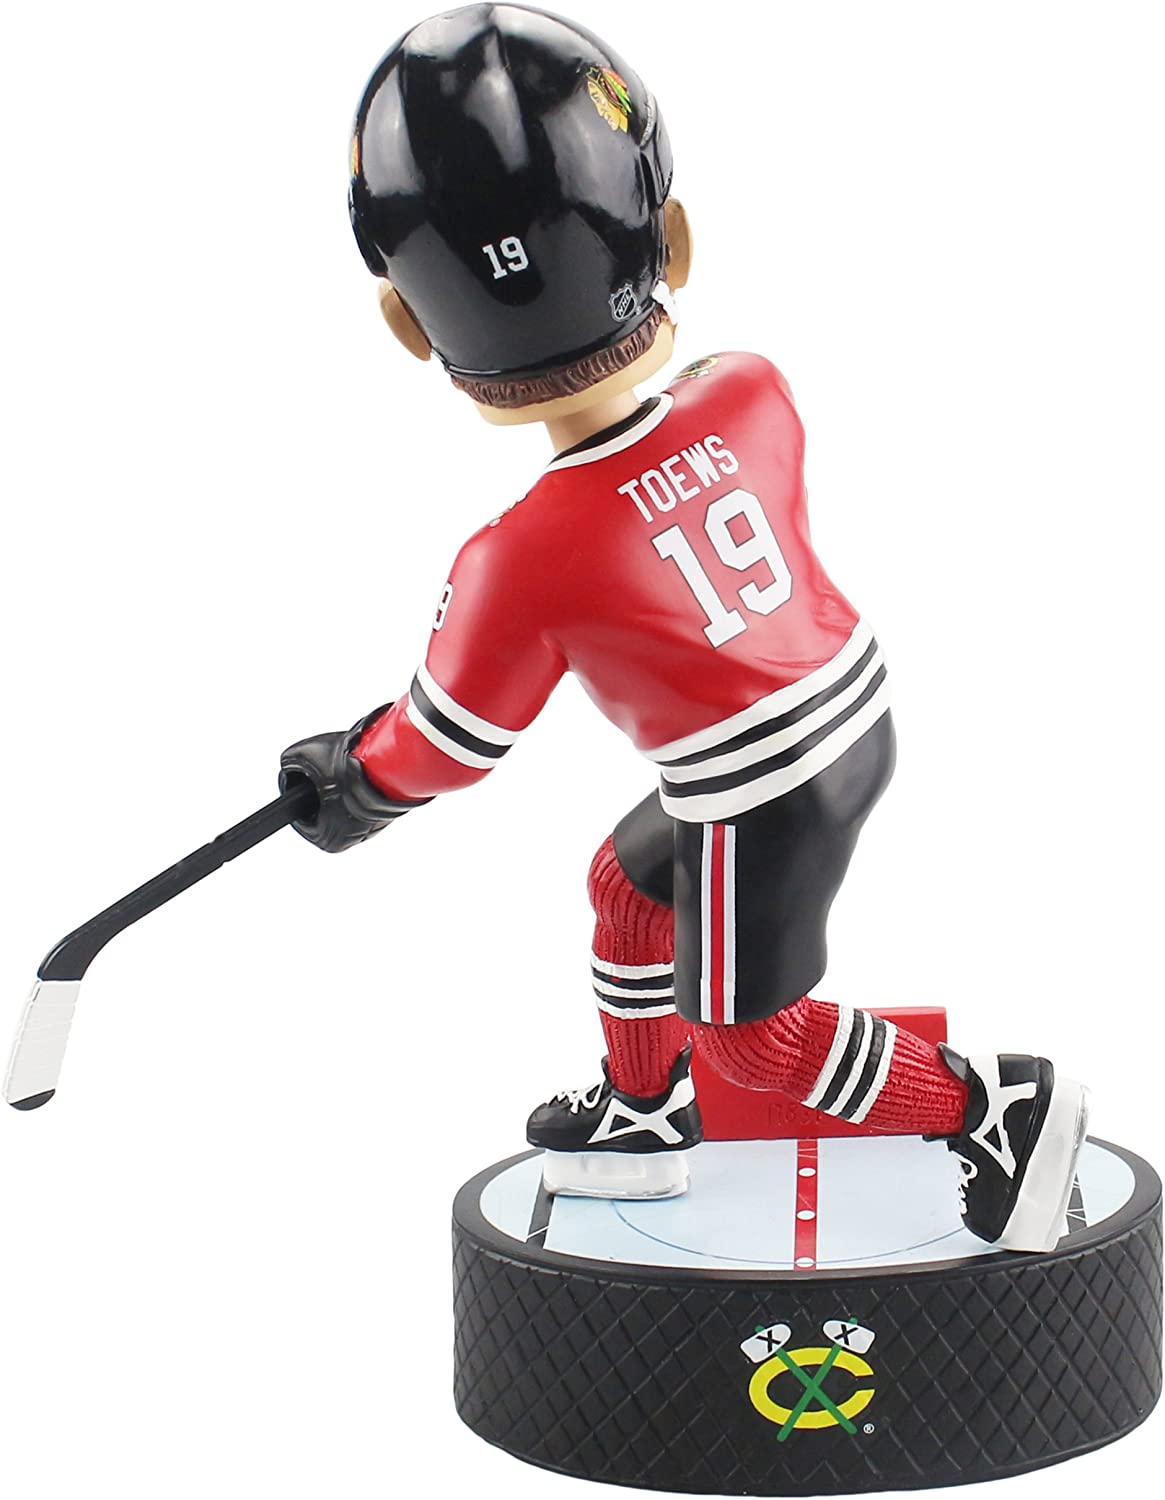 Forever Collectibles Jonathan Toews Chicago Blackhawks Baller Special Edition Bobblehead